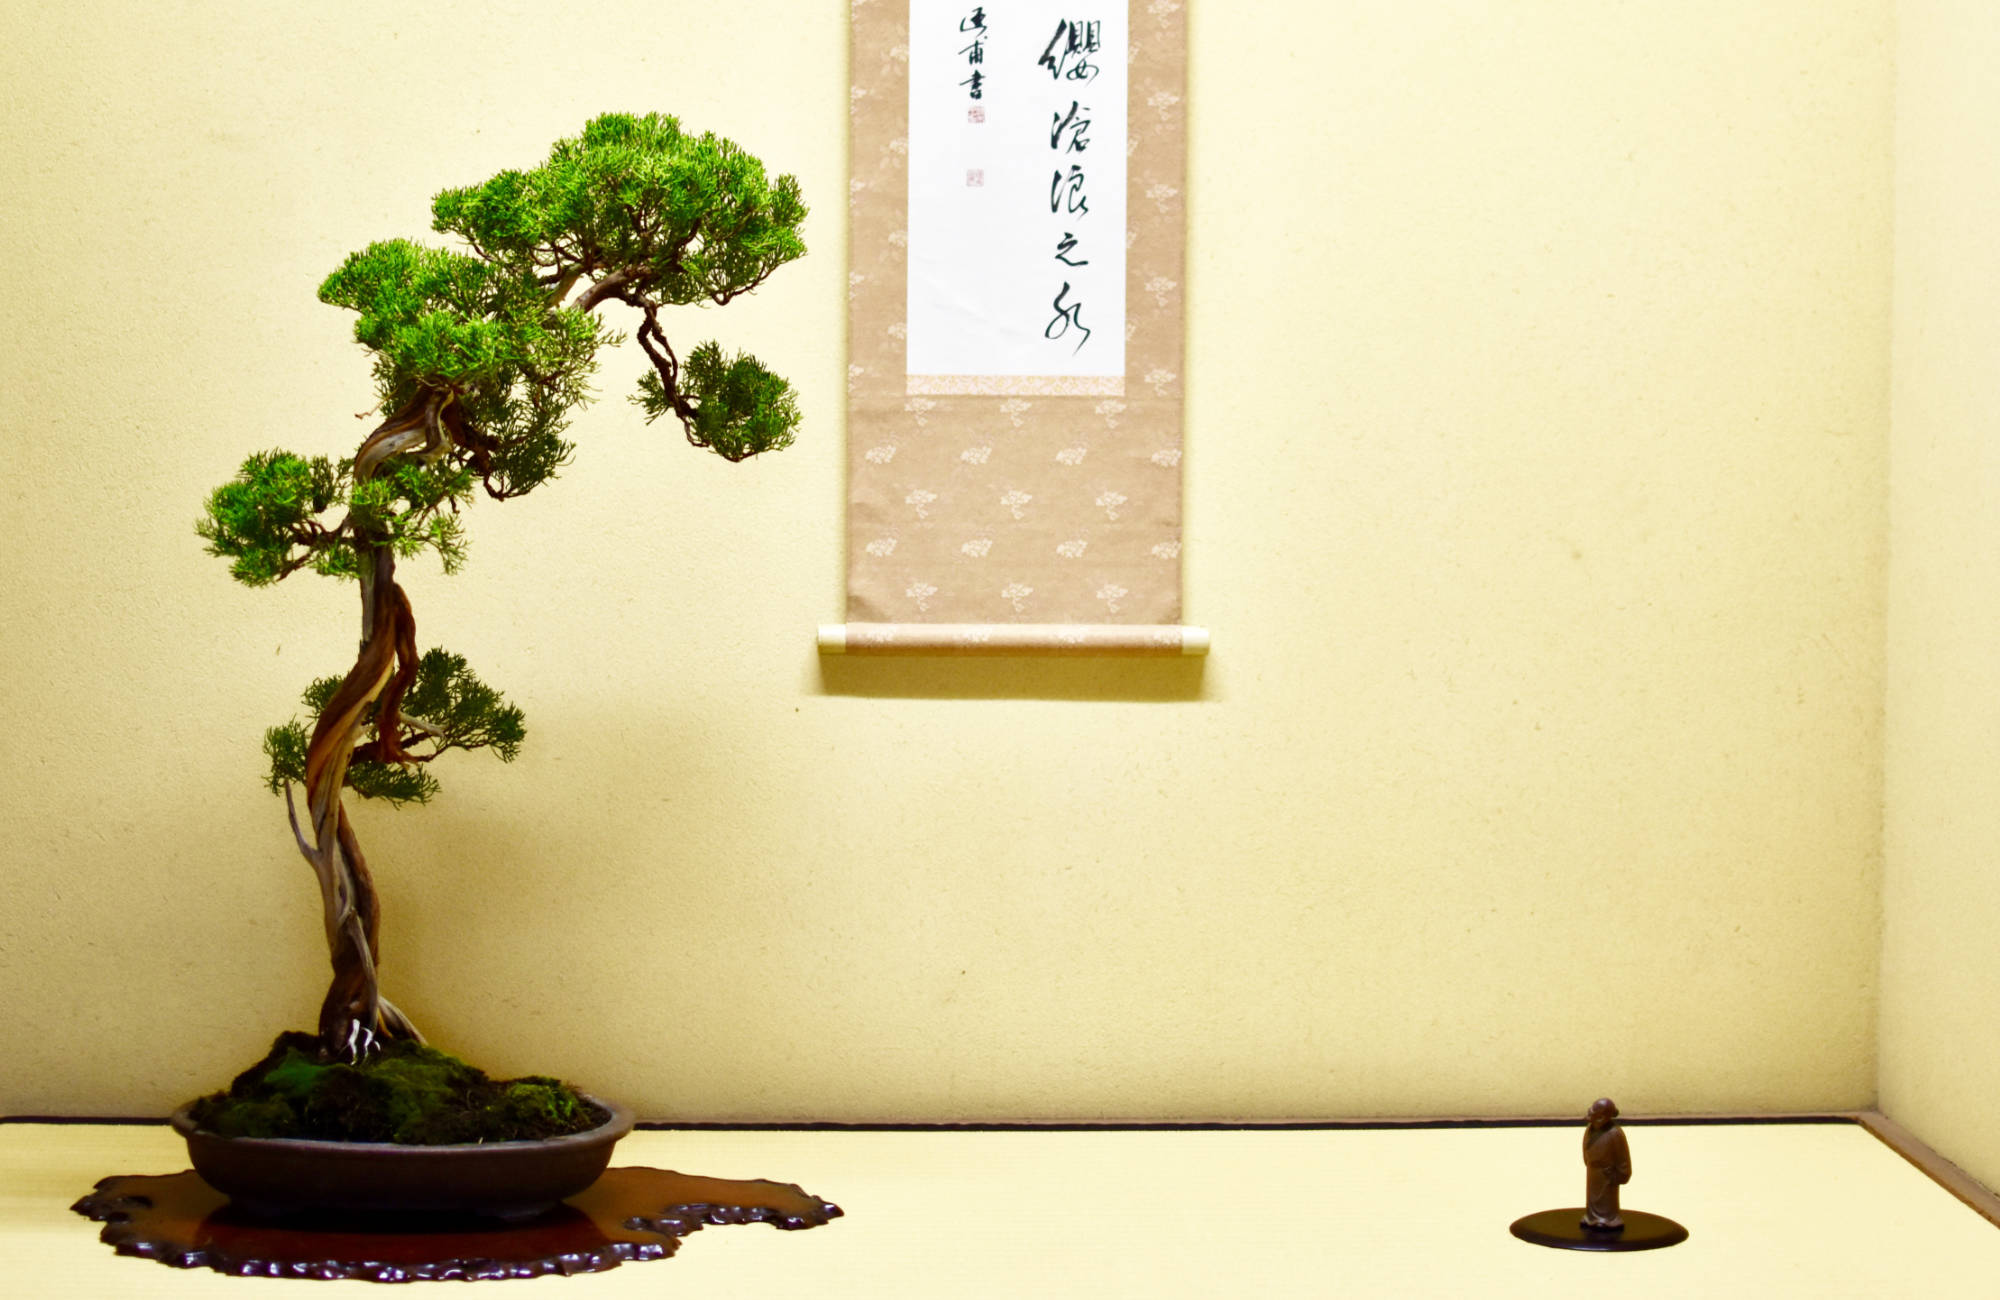 Comment placer un bonsai dans son pot ?